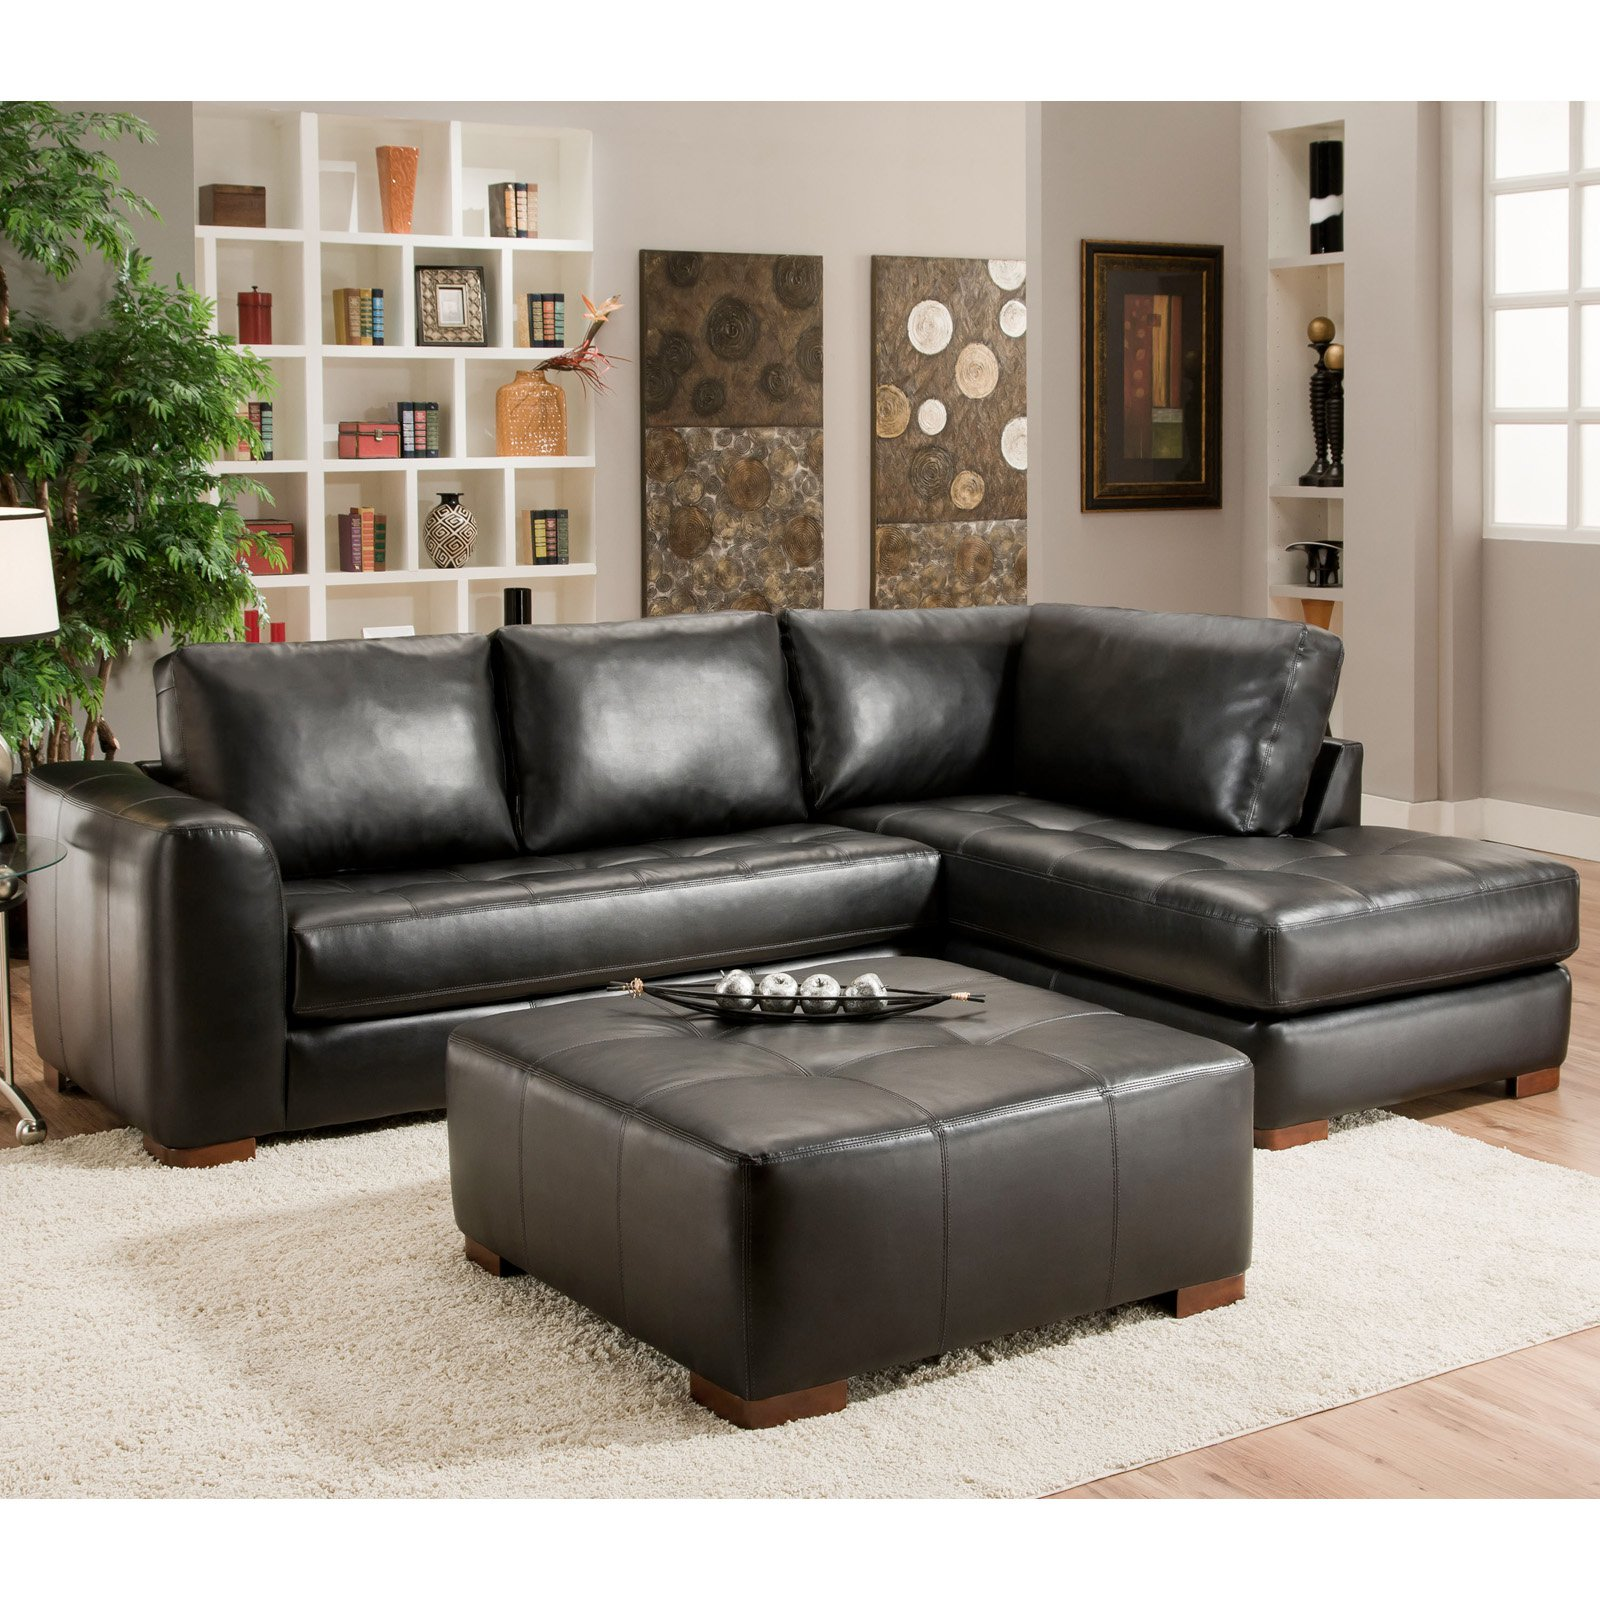 Chelsea Home Madison 2 Piece Sectional Sofa Walmart